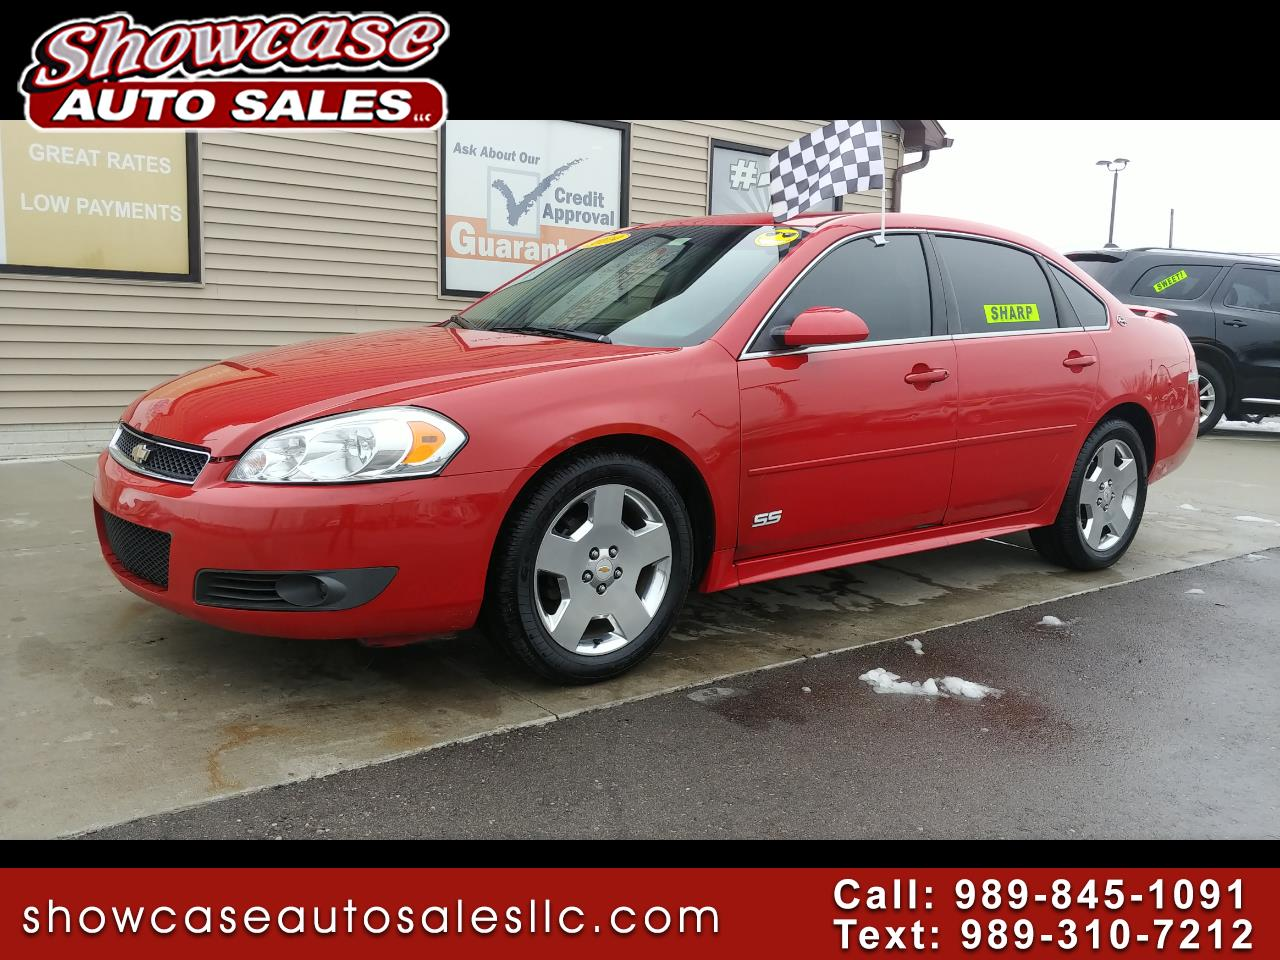 small resolution of 2009 chevrolet impala ss fwd